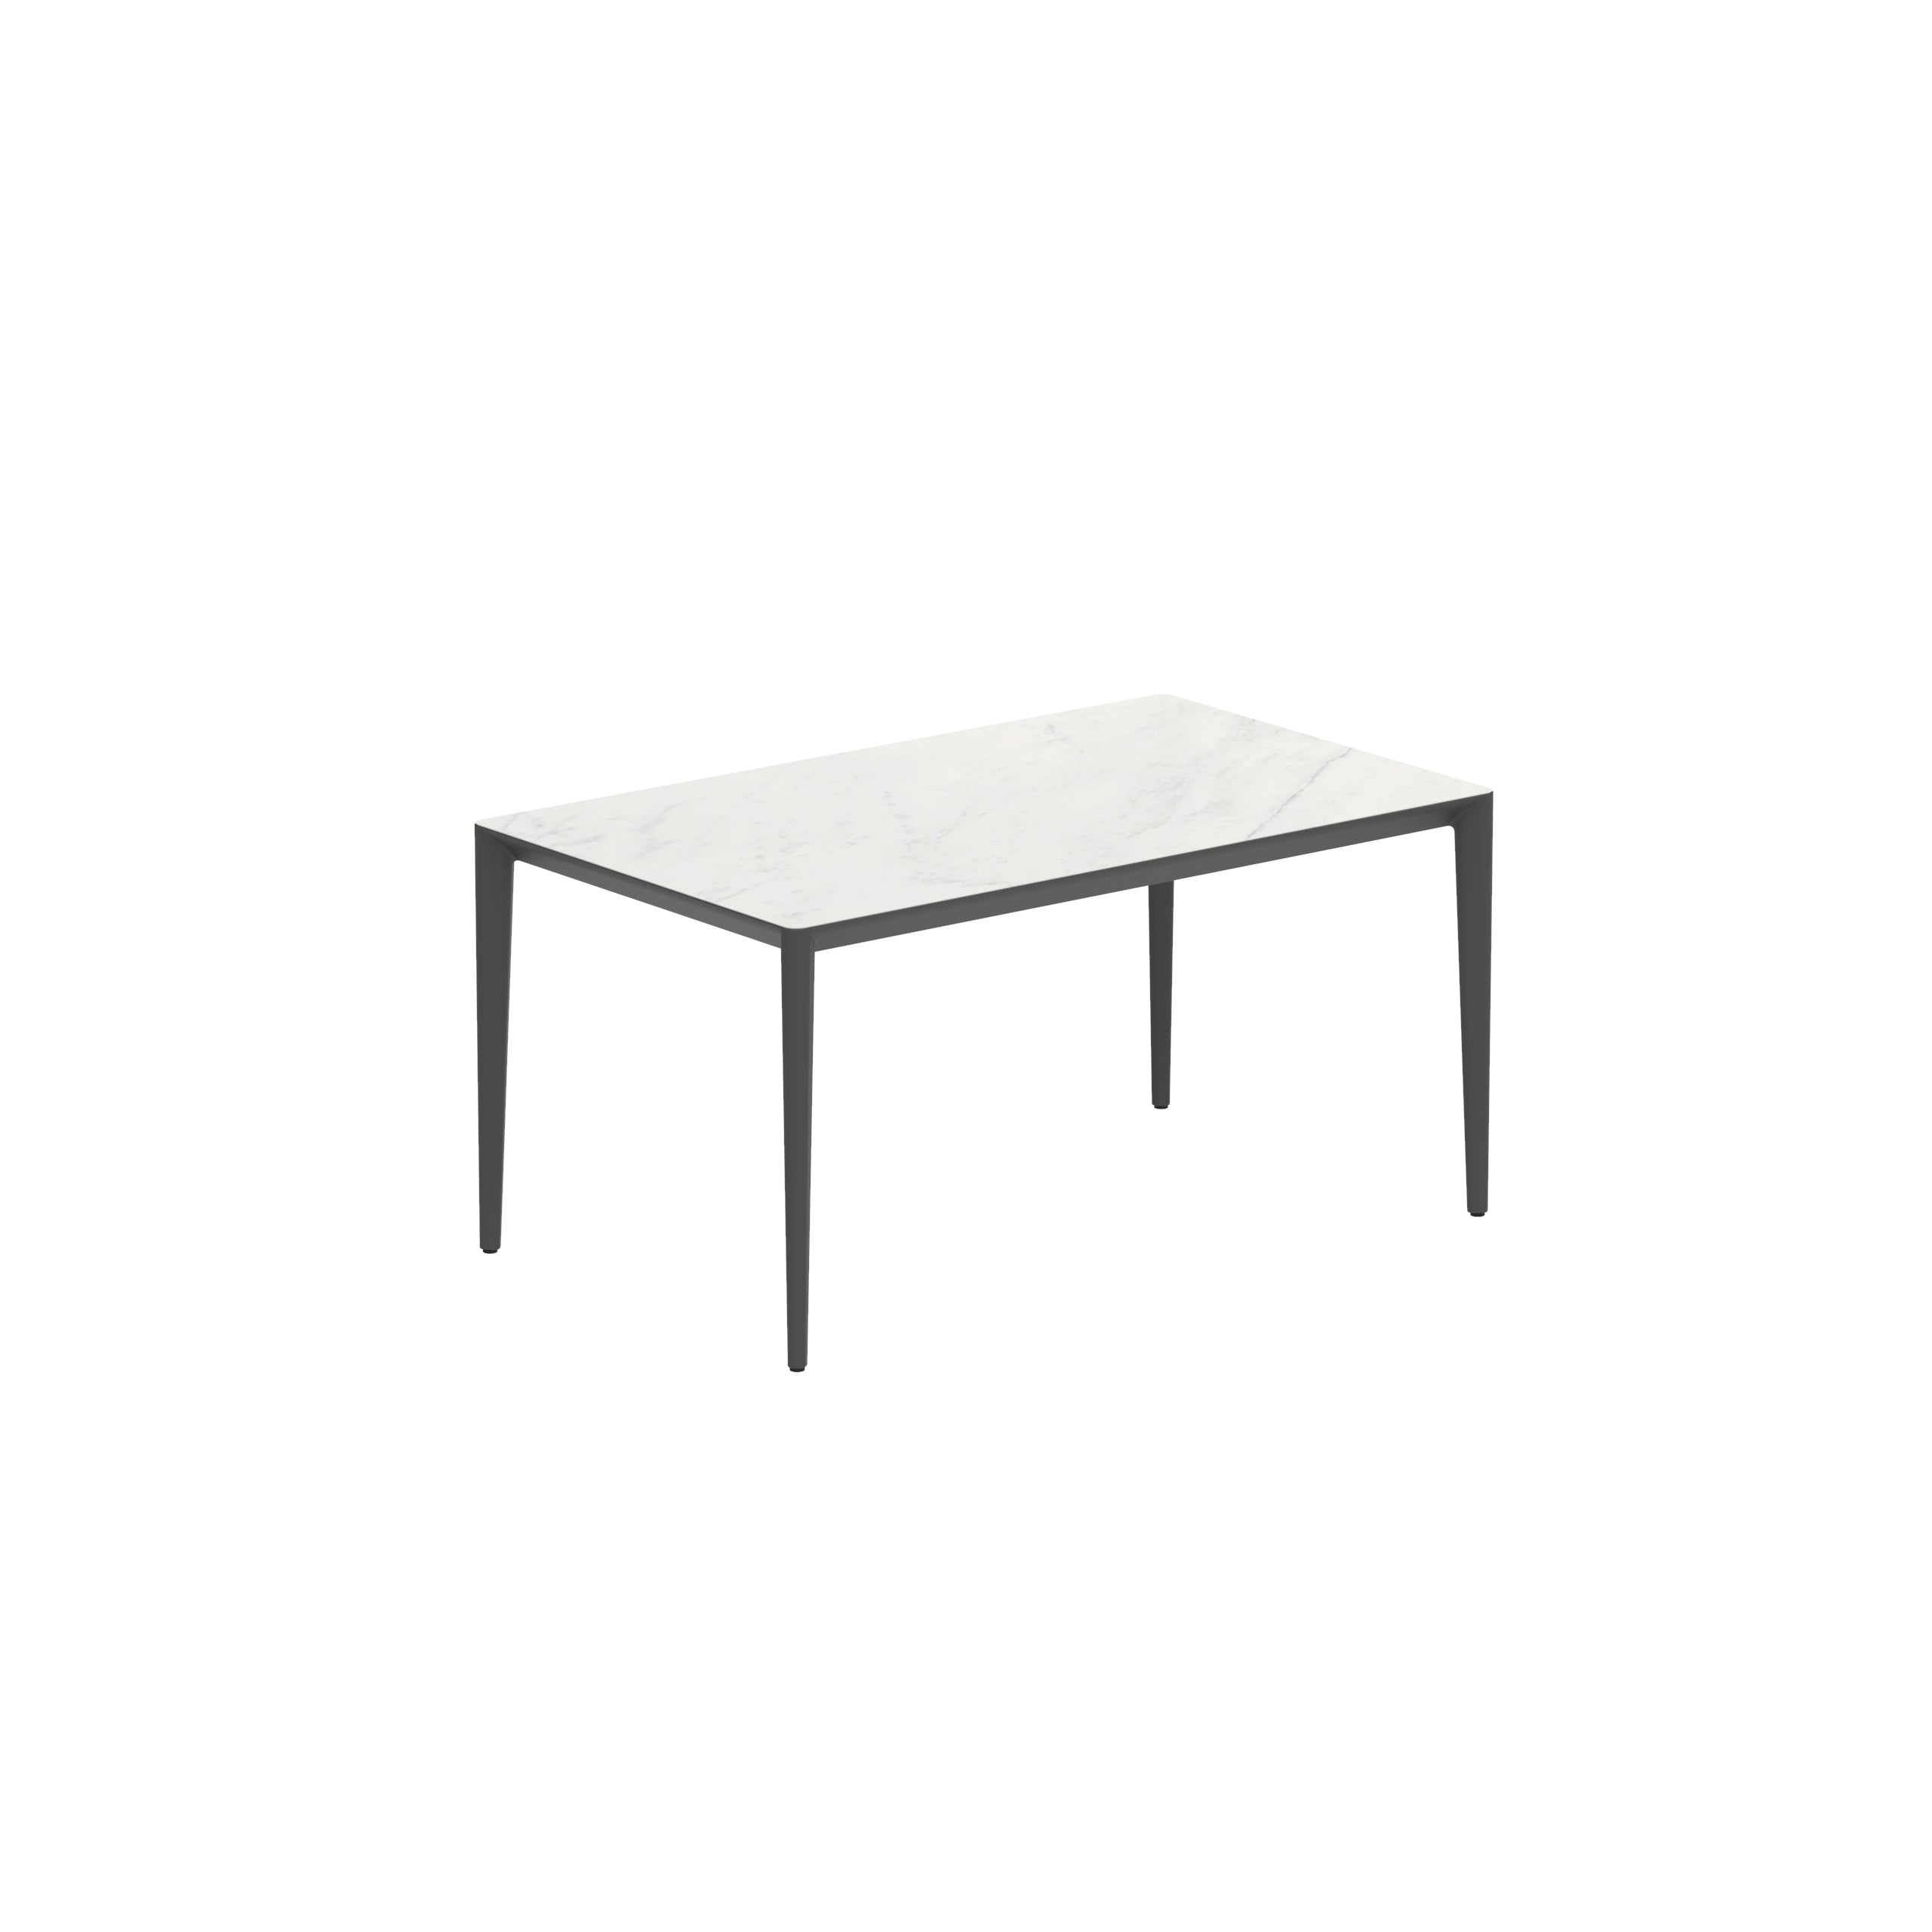 U-nite Rectangular Ceramic Tables